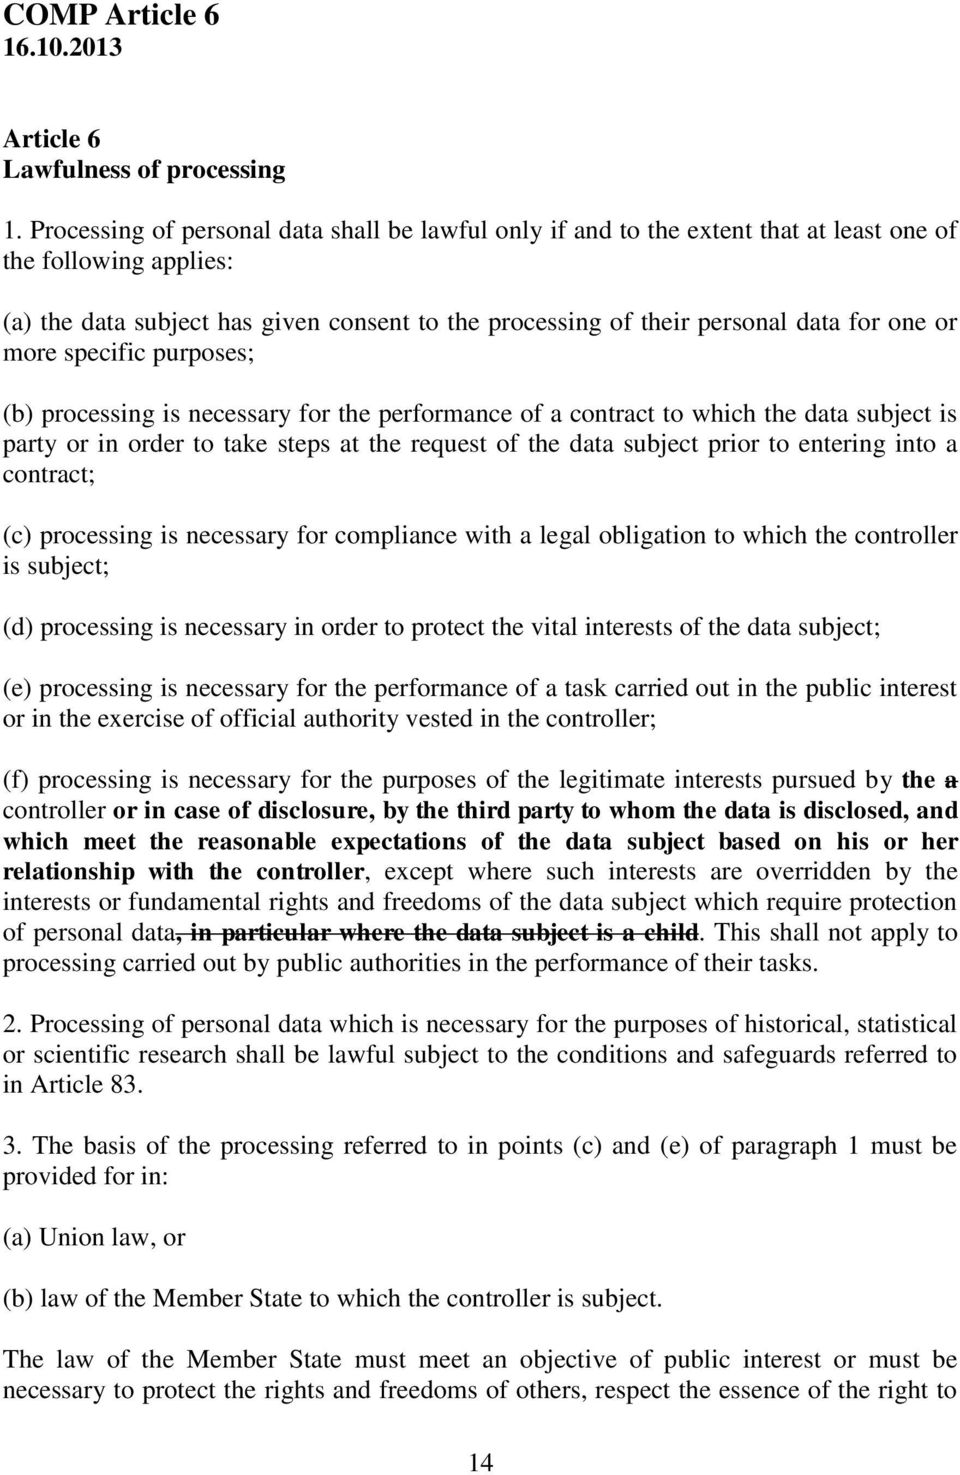 one or more specific purposes; (b) processing is necessary for the performance of a contract to which the data subject is party or in order to take steps at the request of the data subject prior to